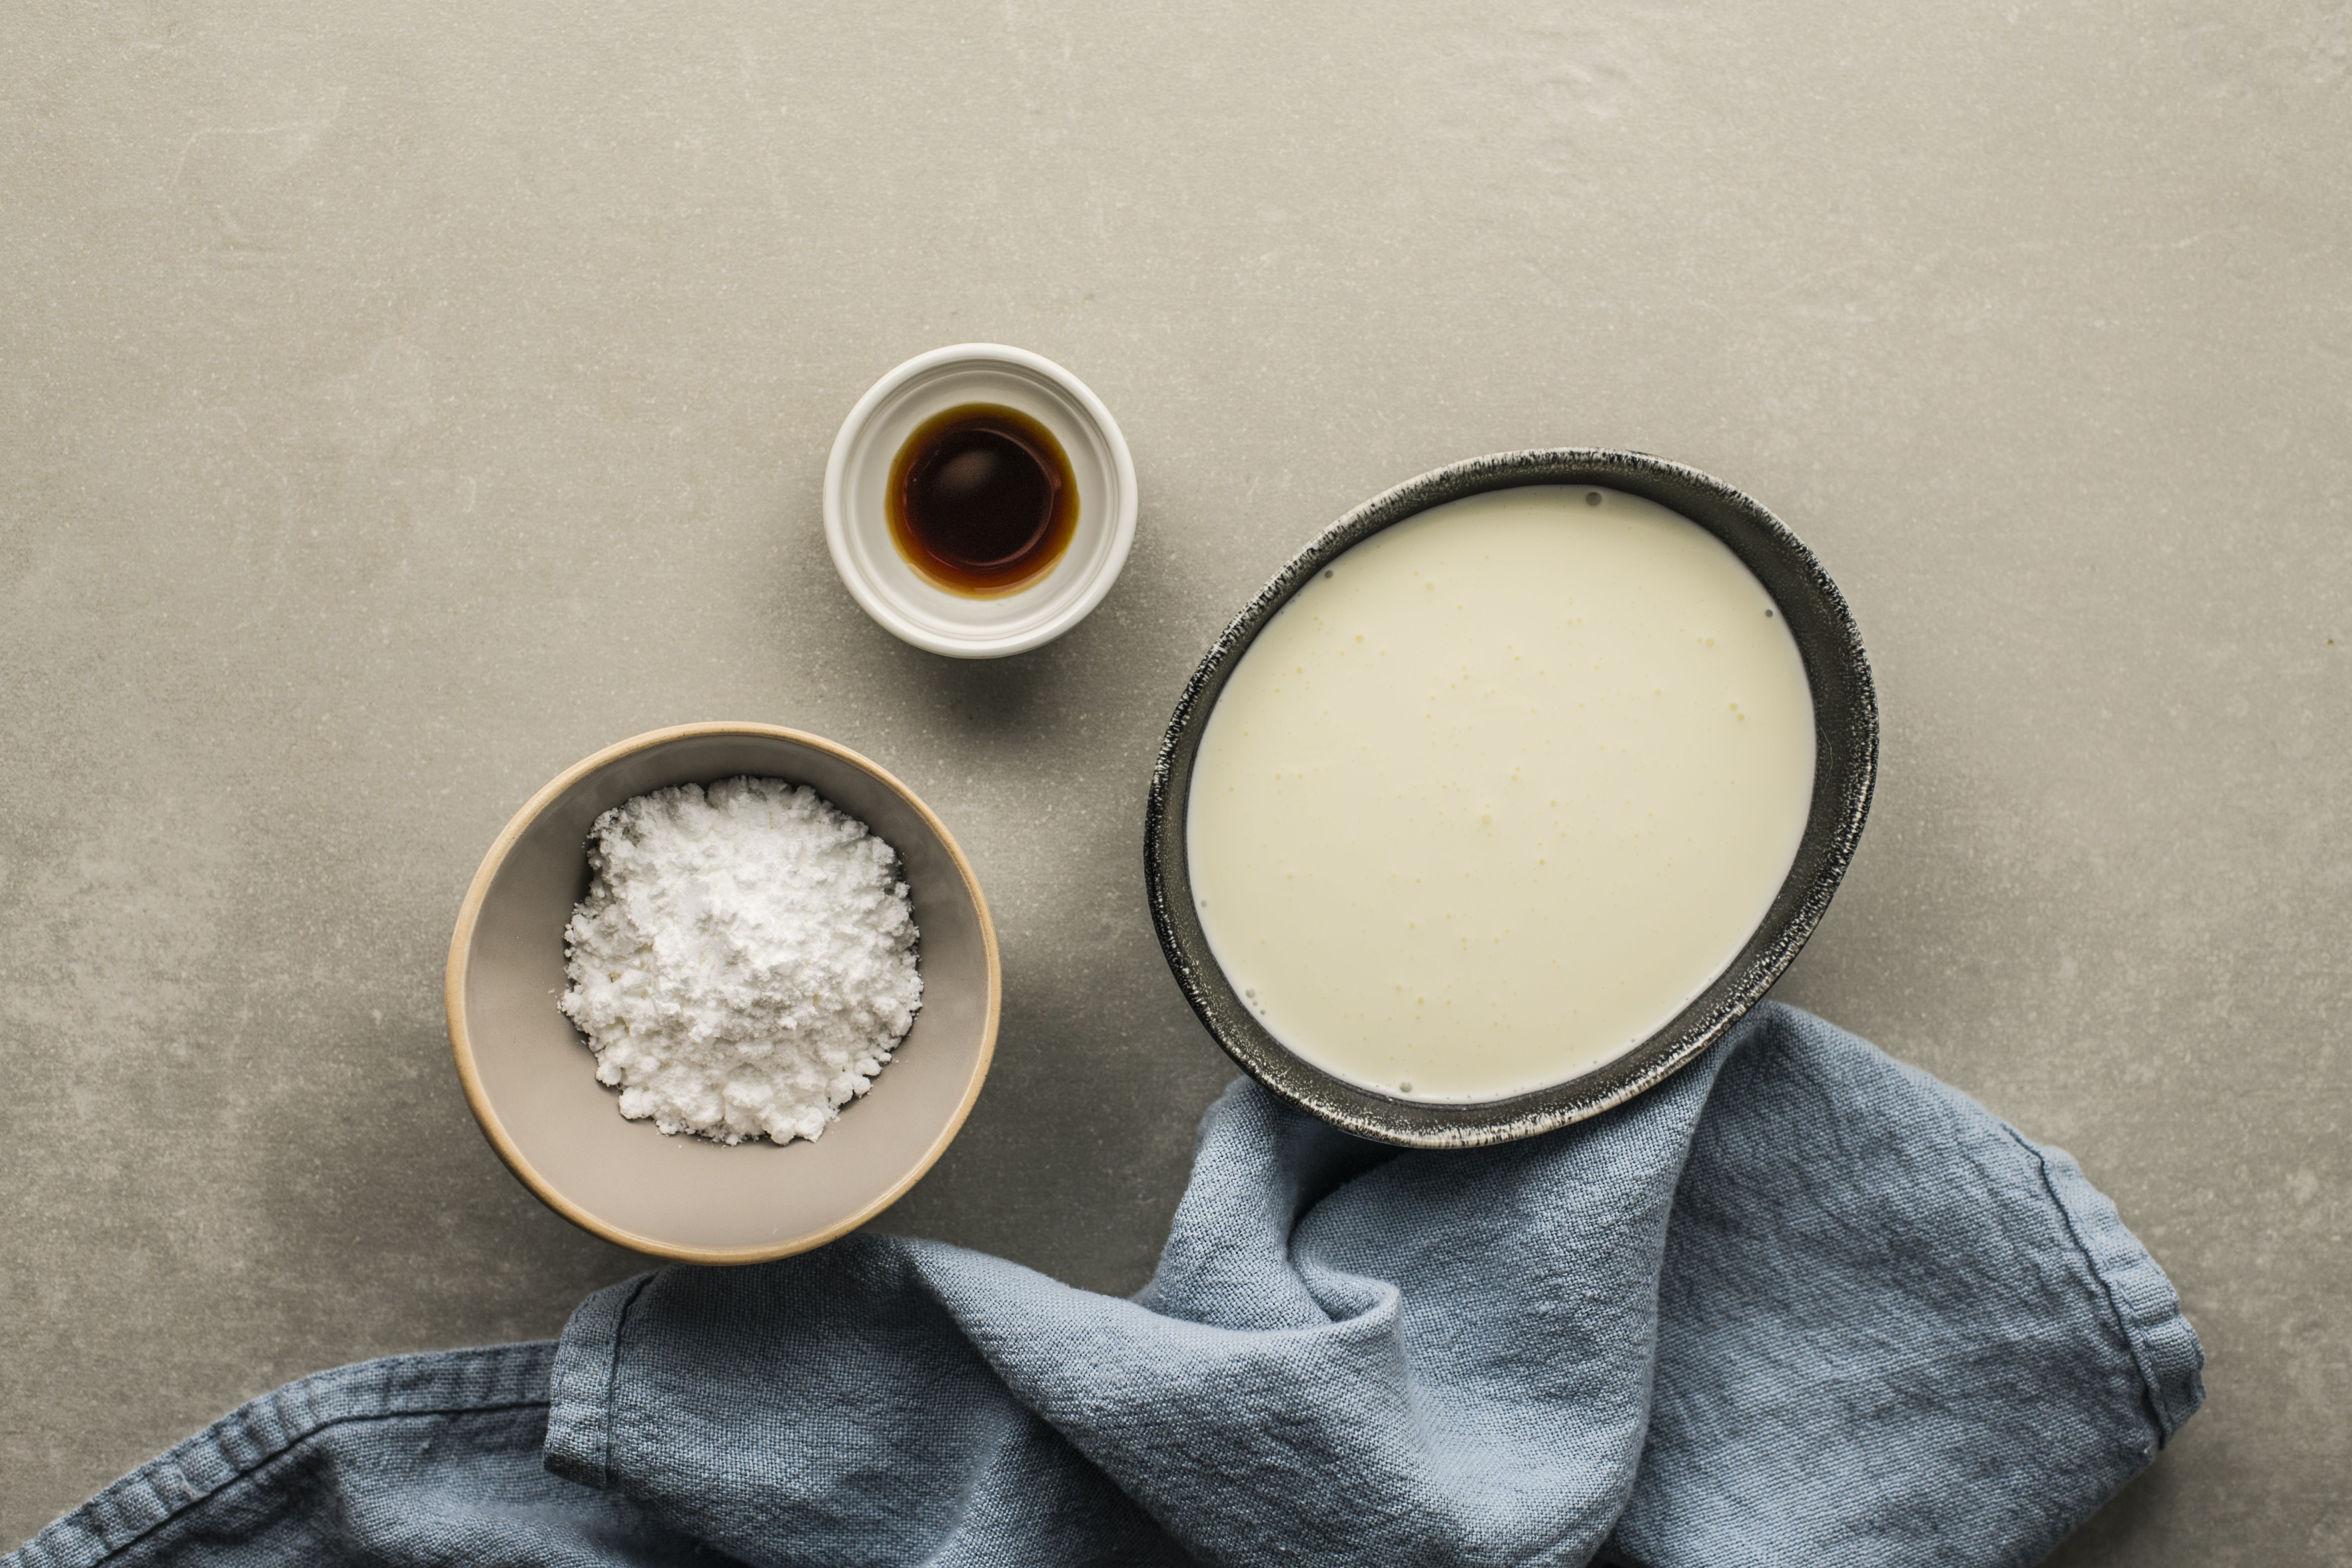 Ingredients for sweetened whipped cream